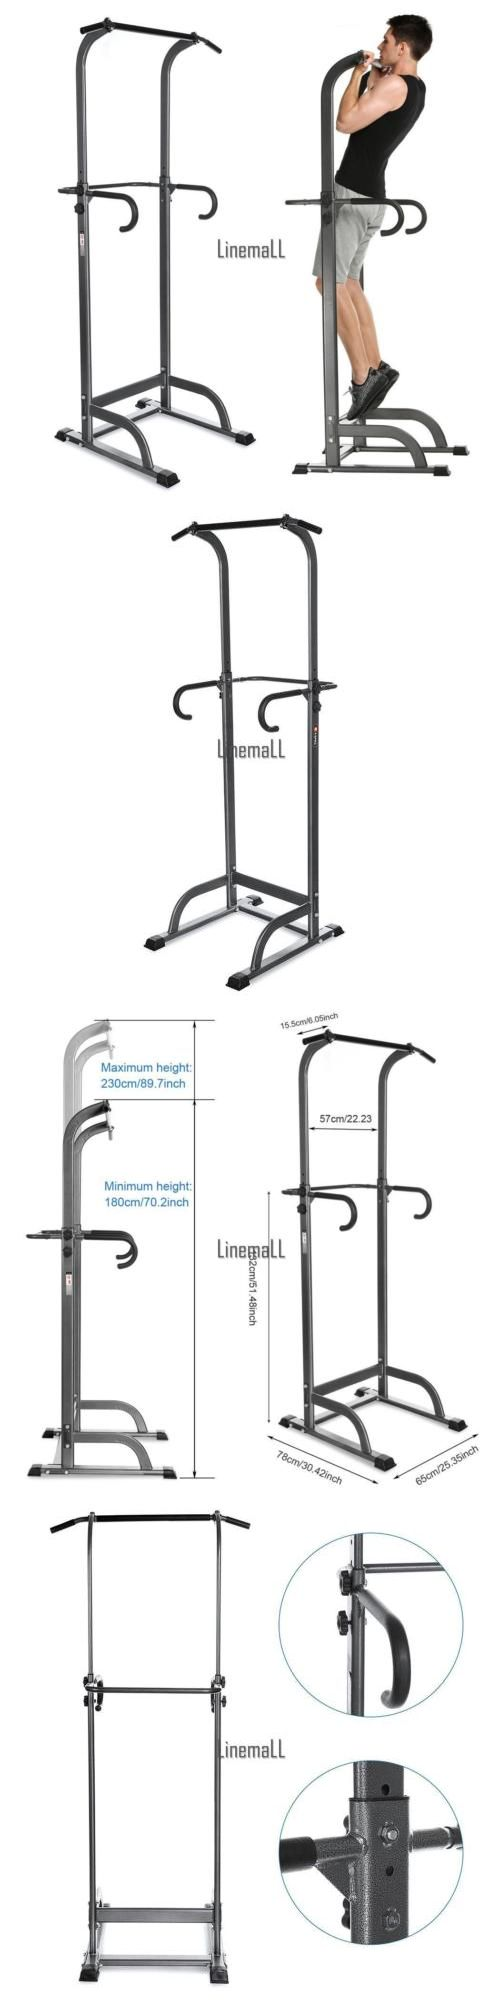 Push Up Stands 158925: Pull Up Bar Home Fitness Tower Push Dip Bars Body Workout Chin Gym Power Station -> BUY IT NOW ONLY: $96.83 on eBay!